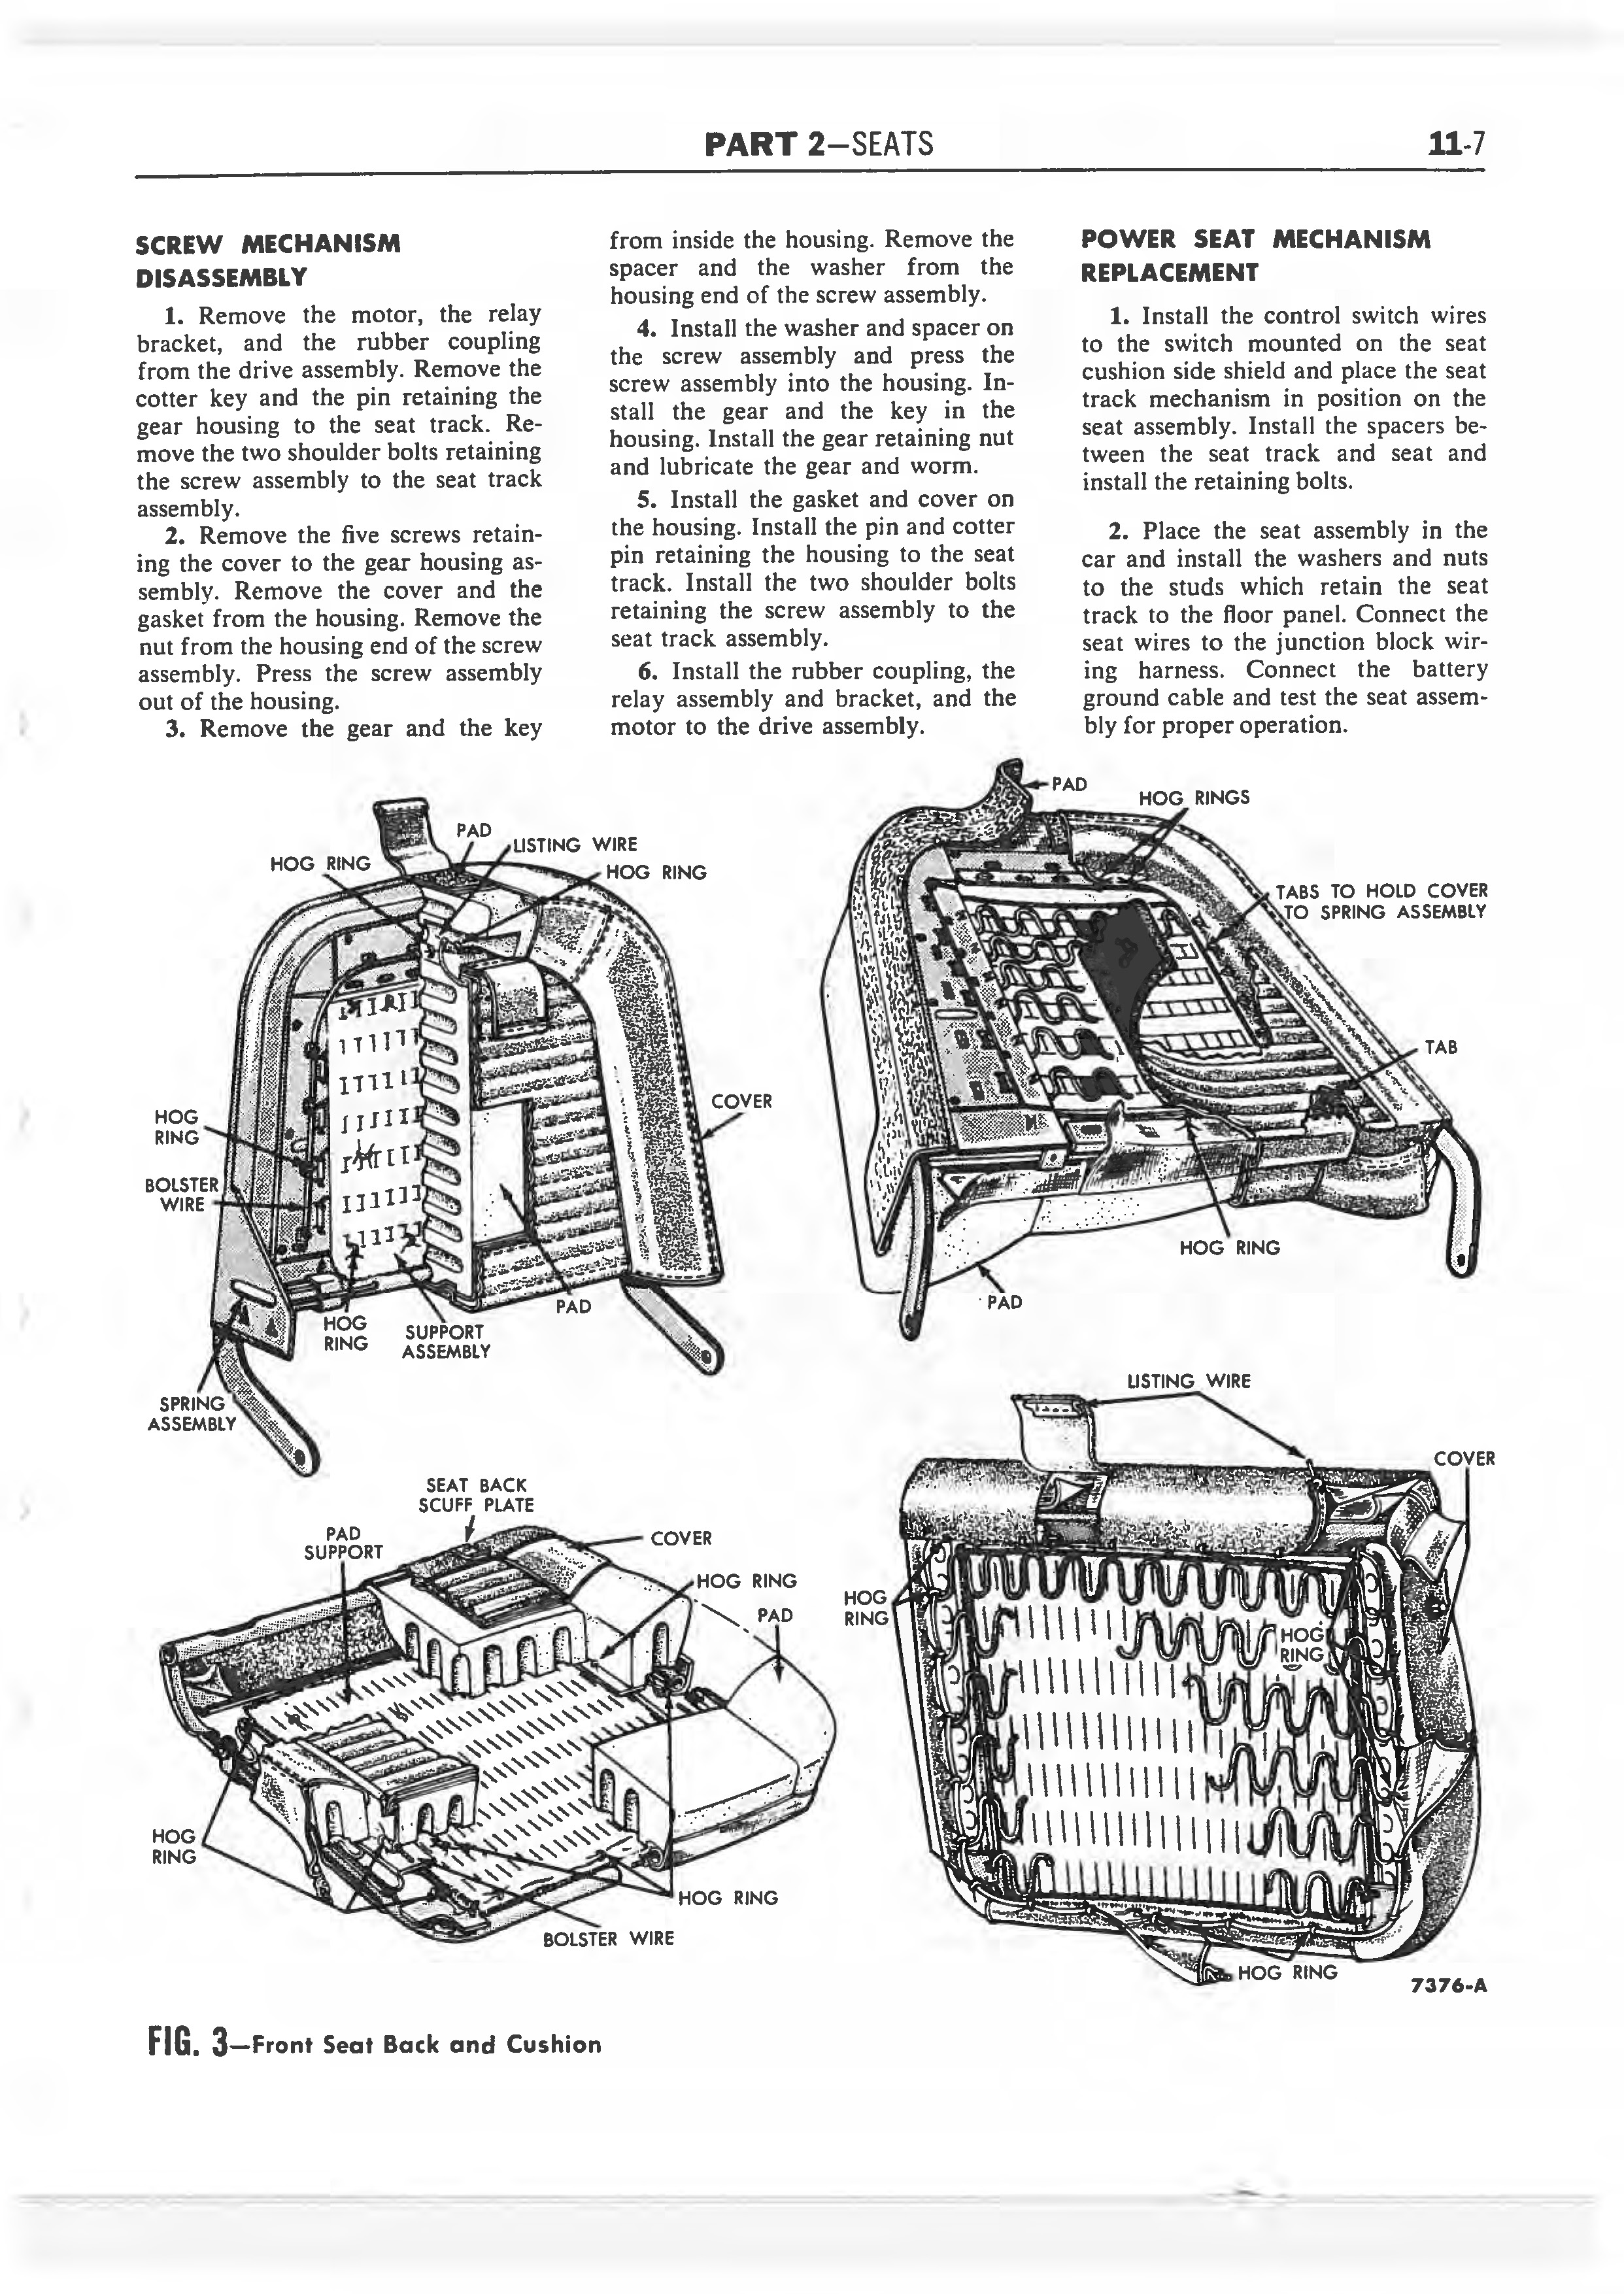 1958 Ford Thunderbird Shop Manual page 320 of 360